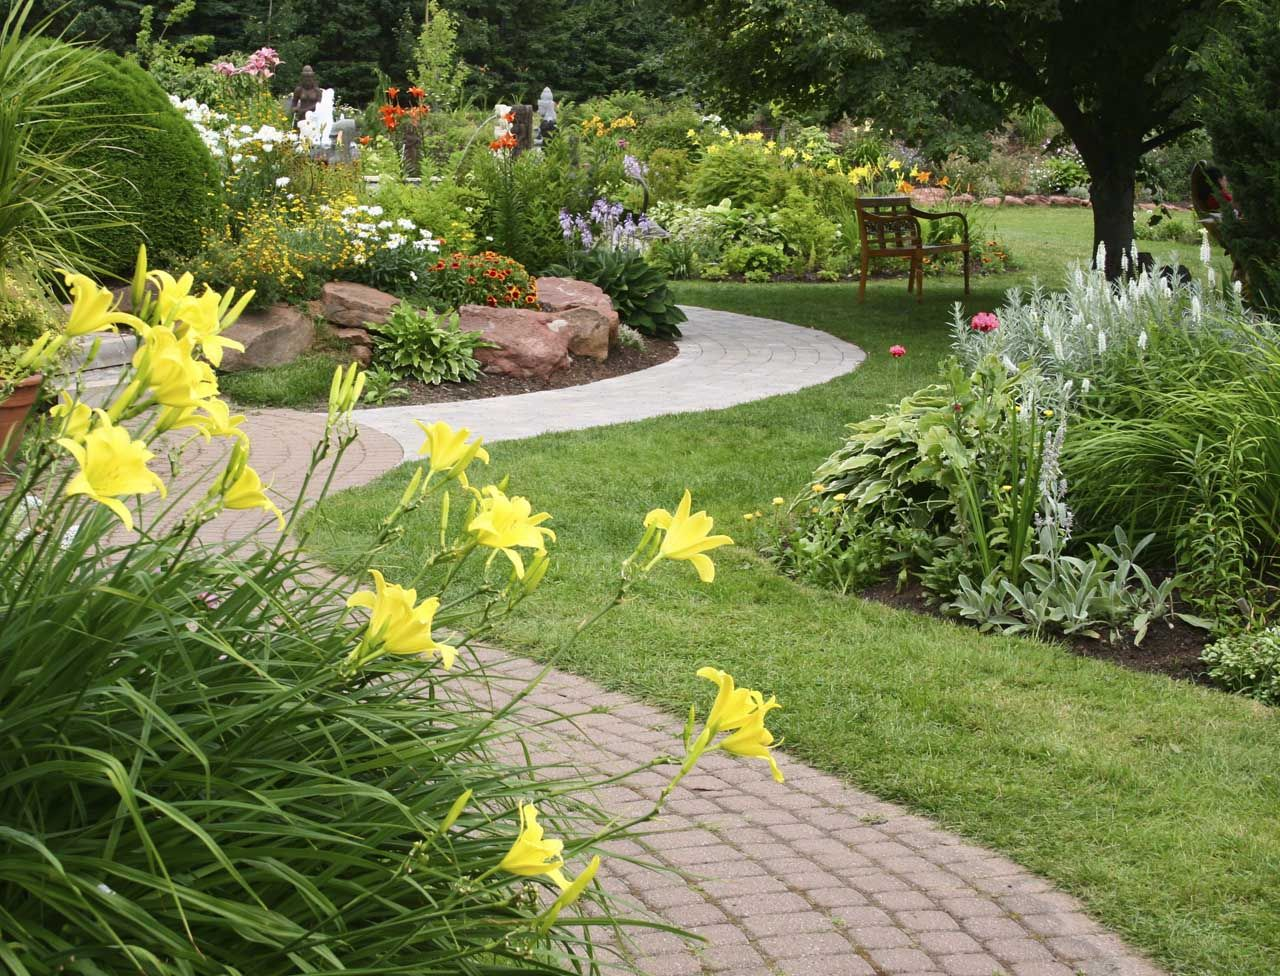 Landscape Gardens Home Decorations Design list of things